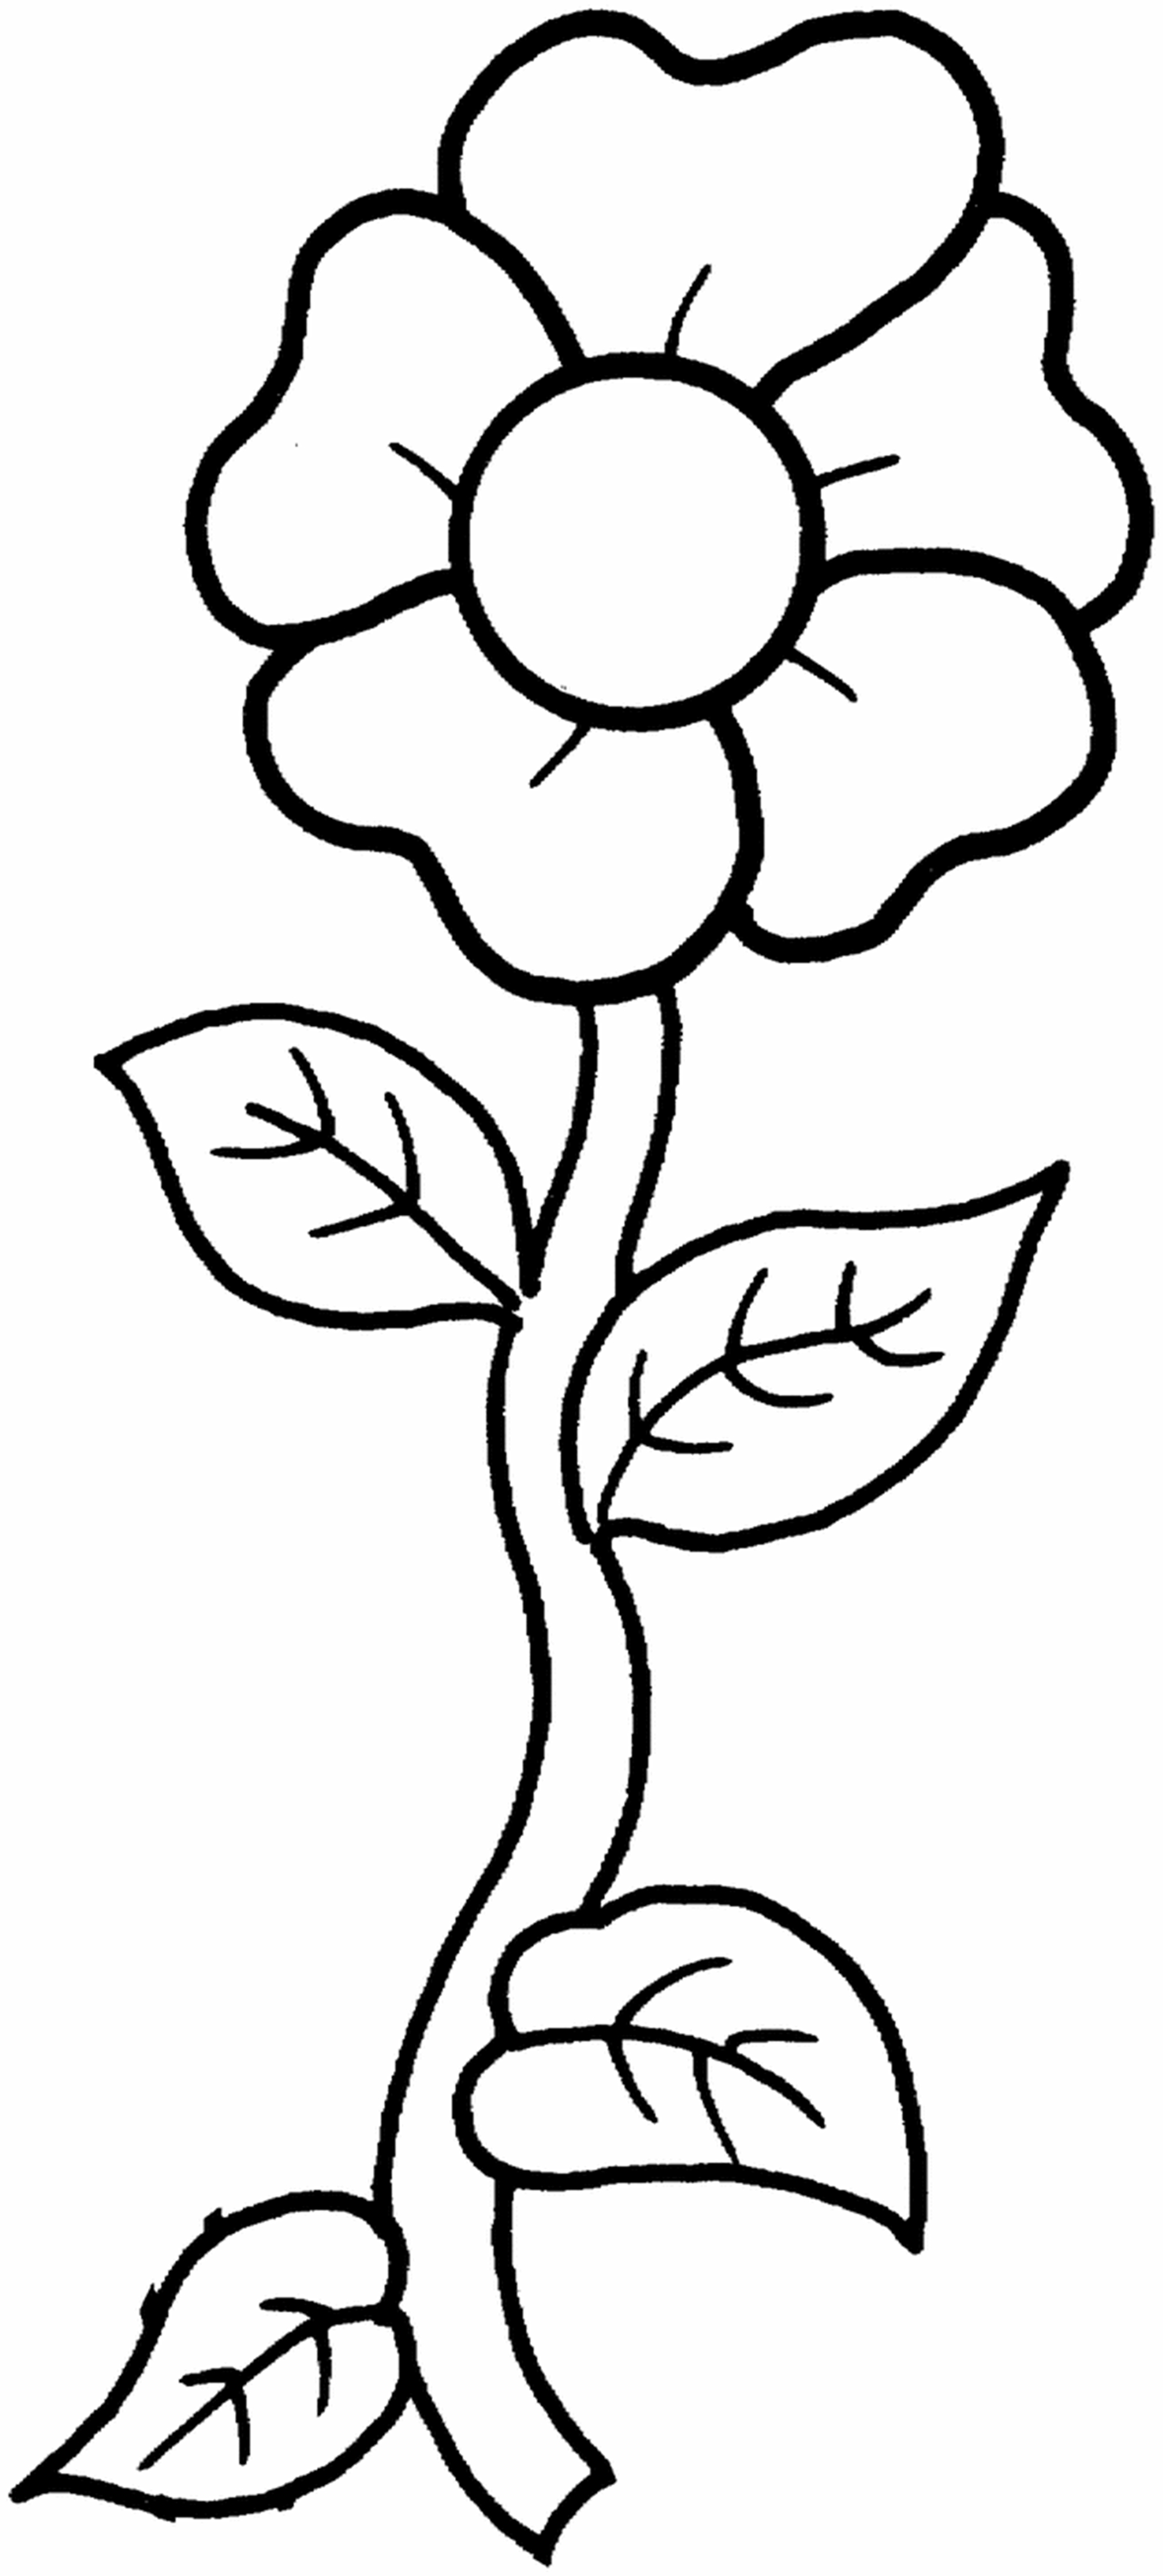 coloring flower pages free printable flower coloring pages for kids best flower coloring pages